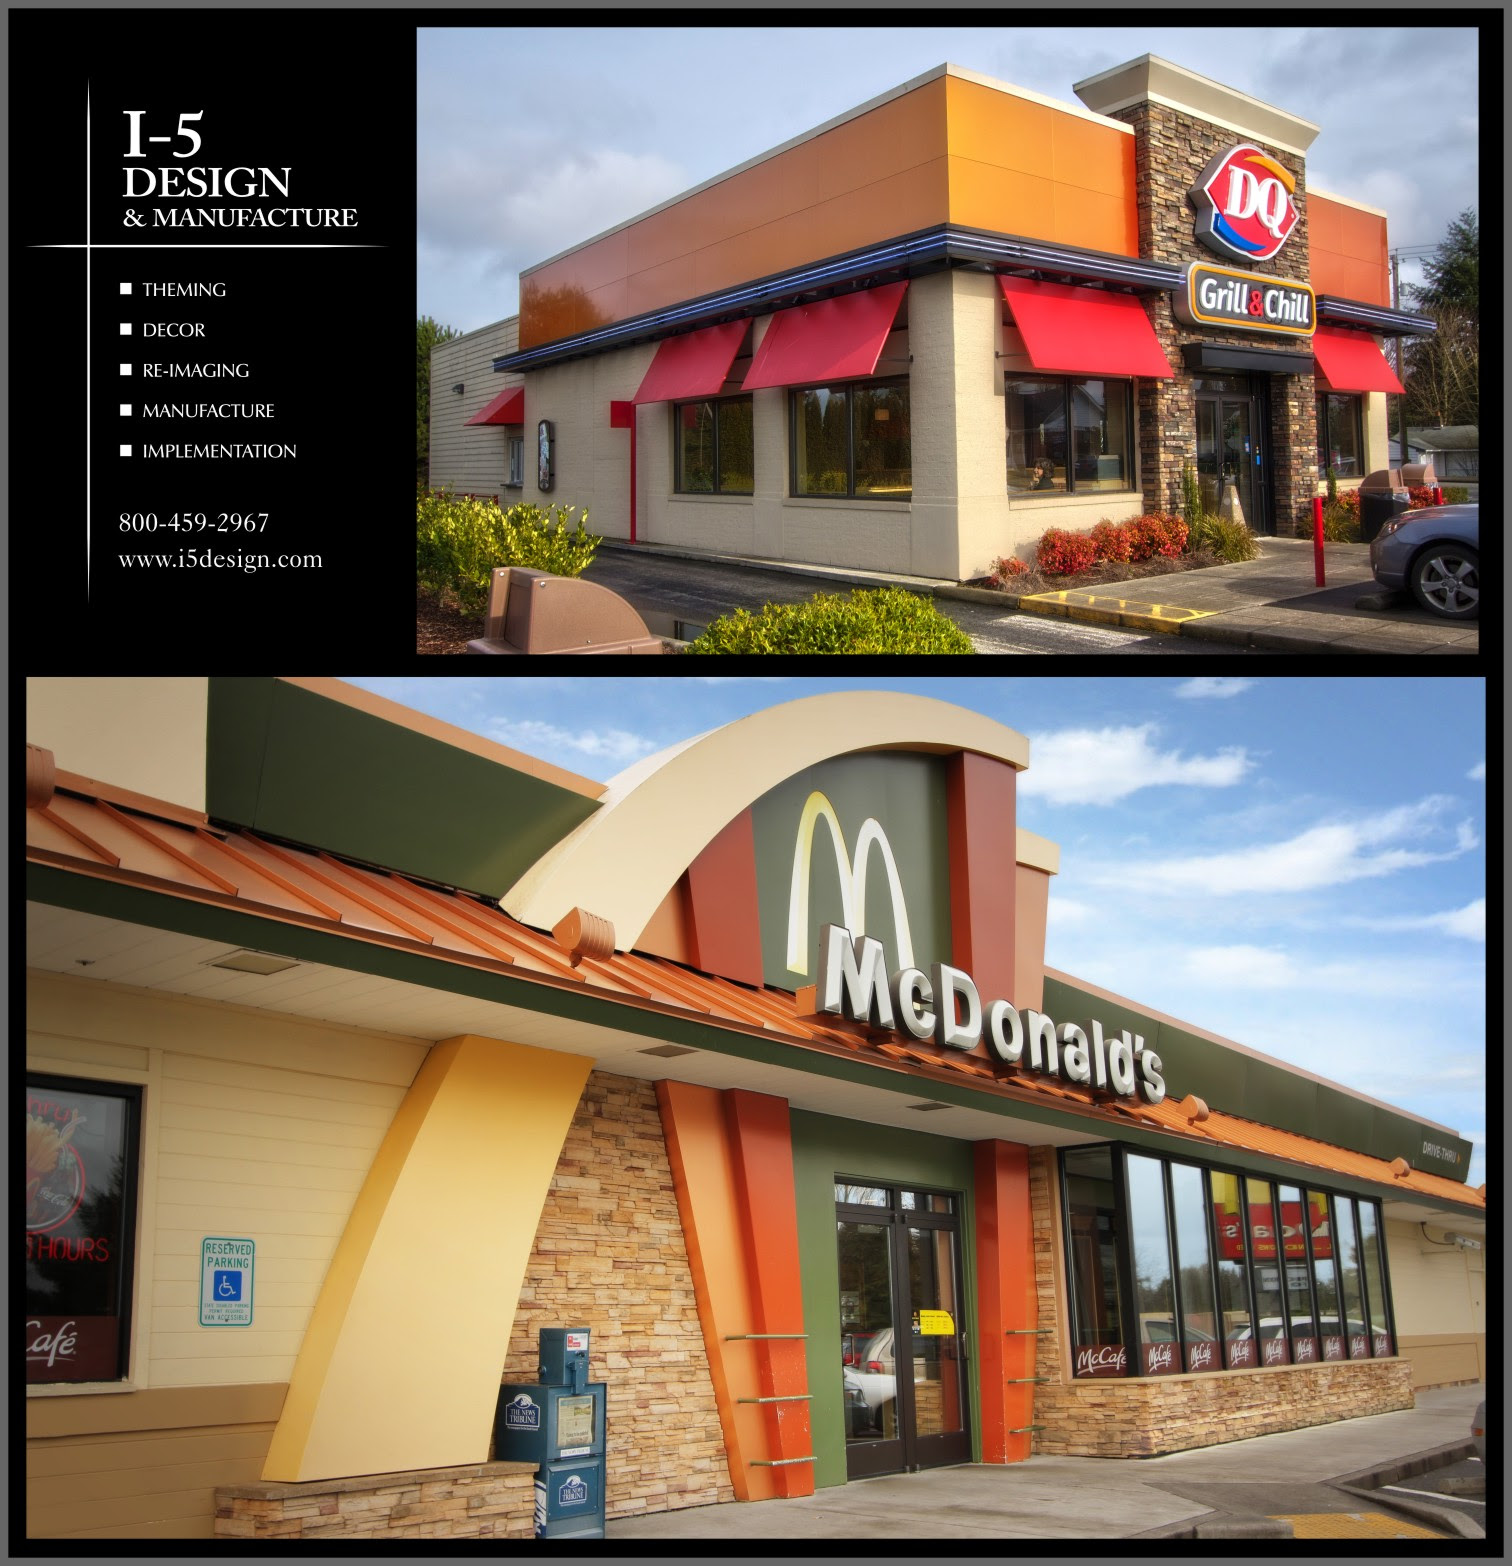 exterior design Archives - Page 2 of 6 - I-5 Design & Manufacture